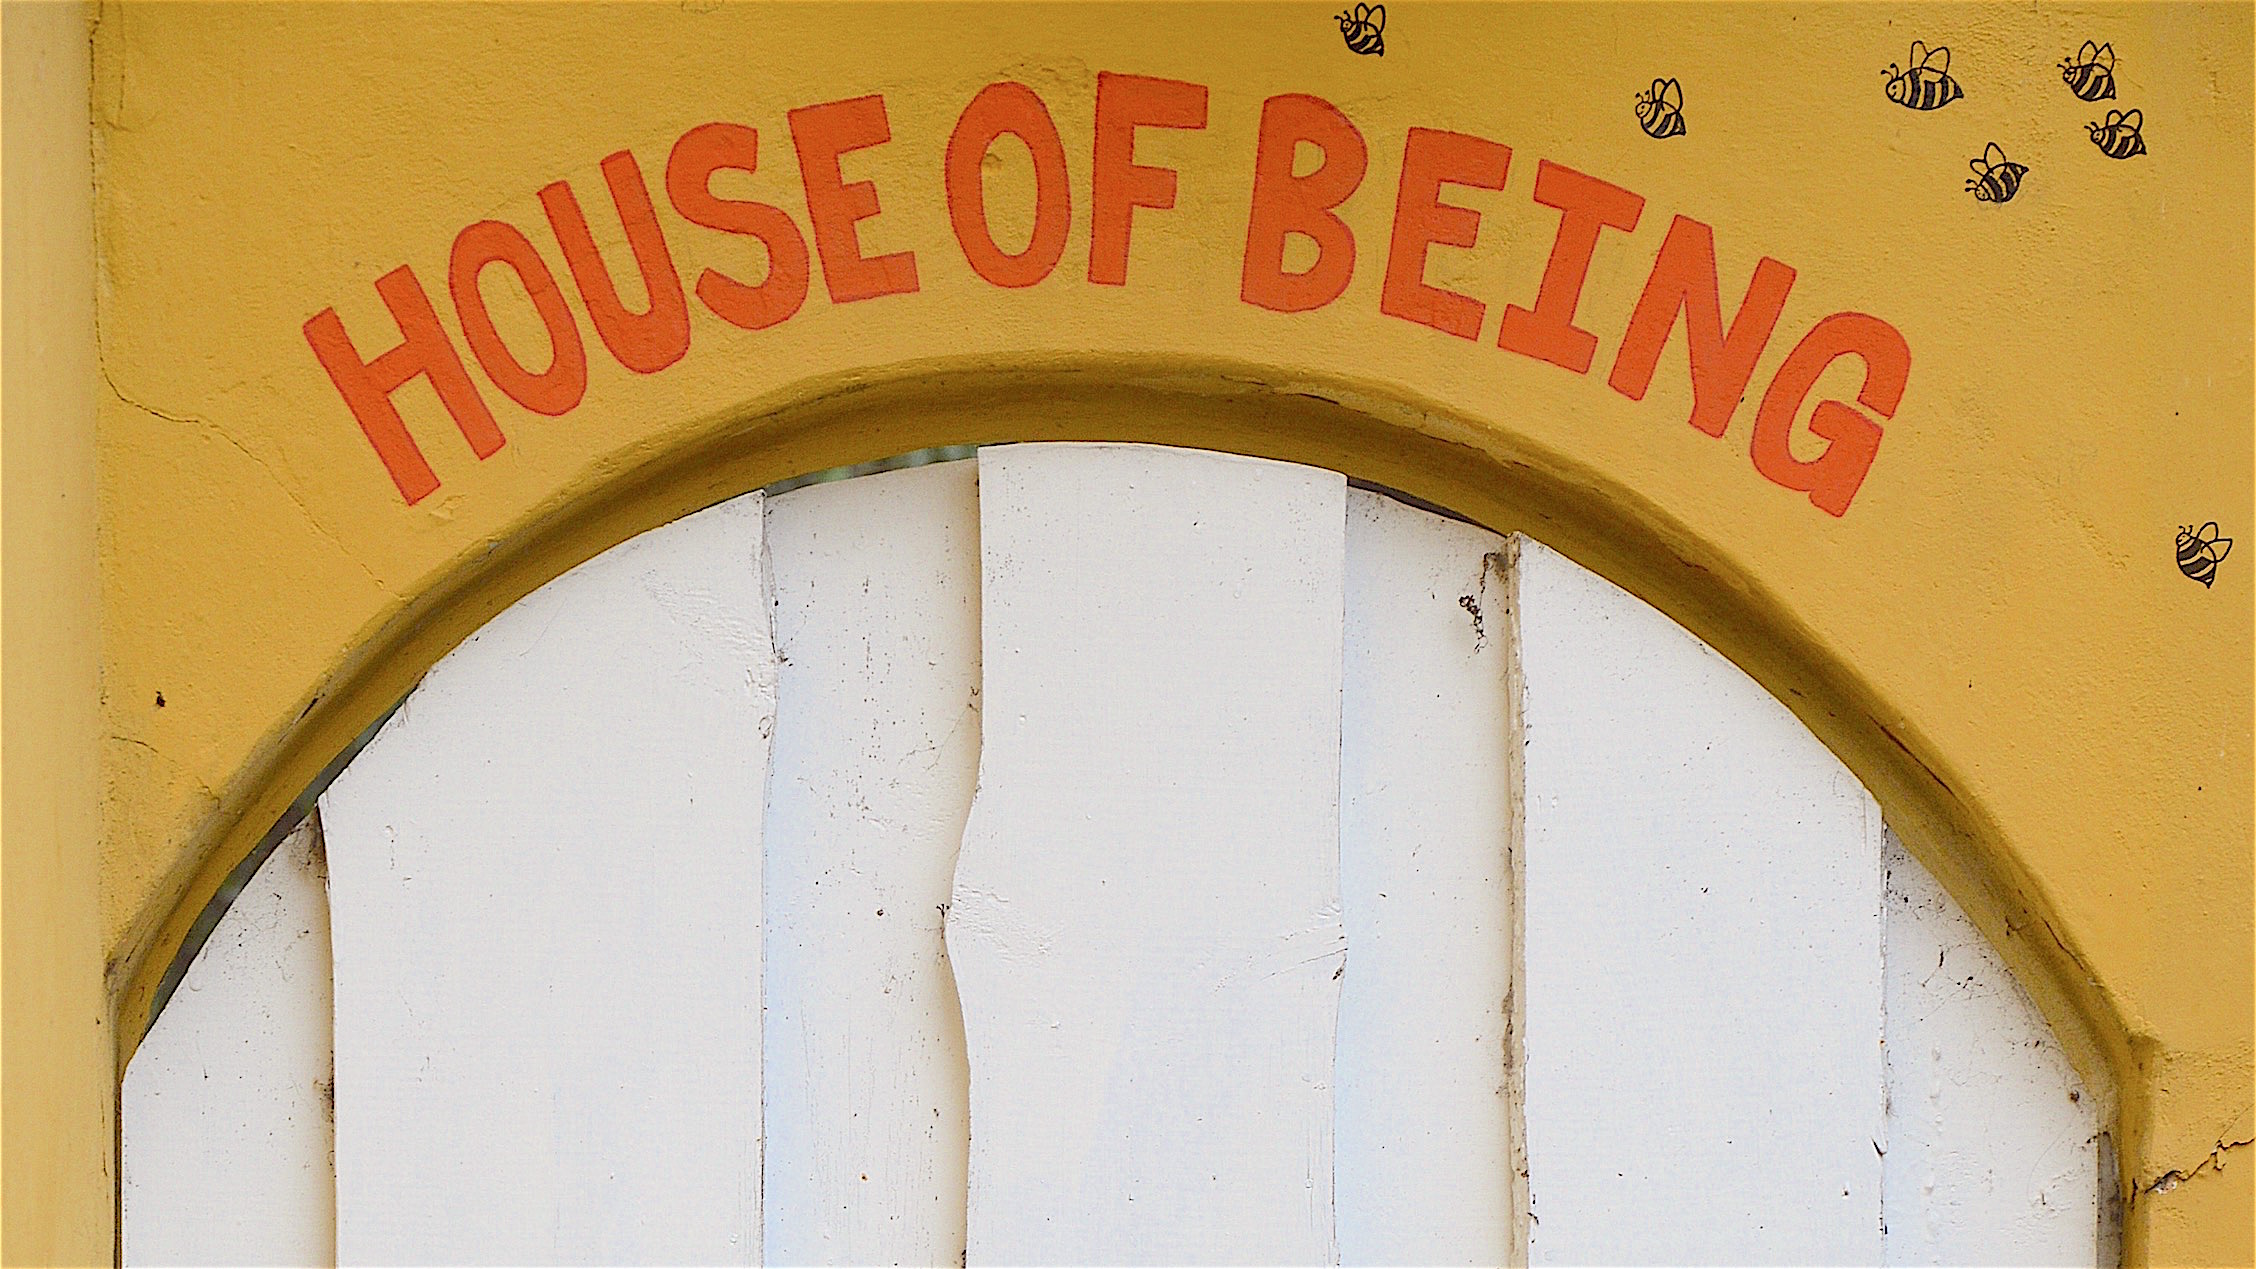 Anne Kamille Ahlefeldt. House of Being.